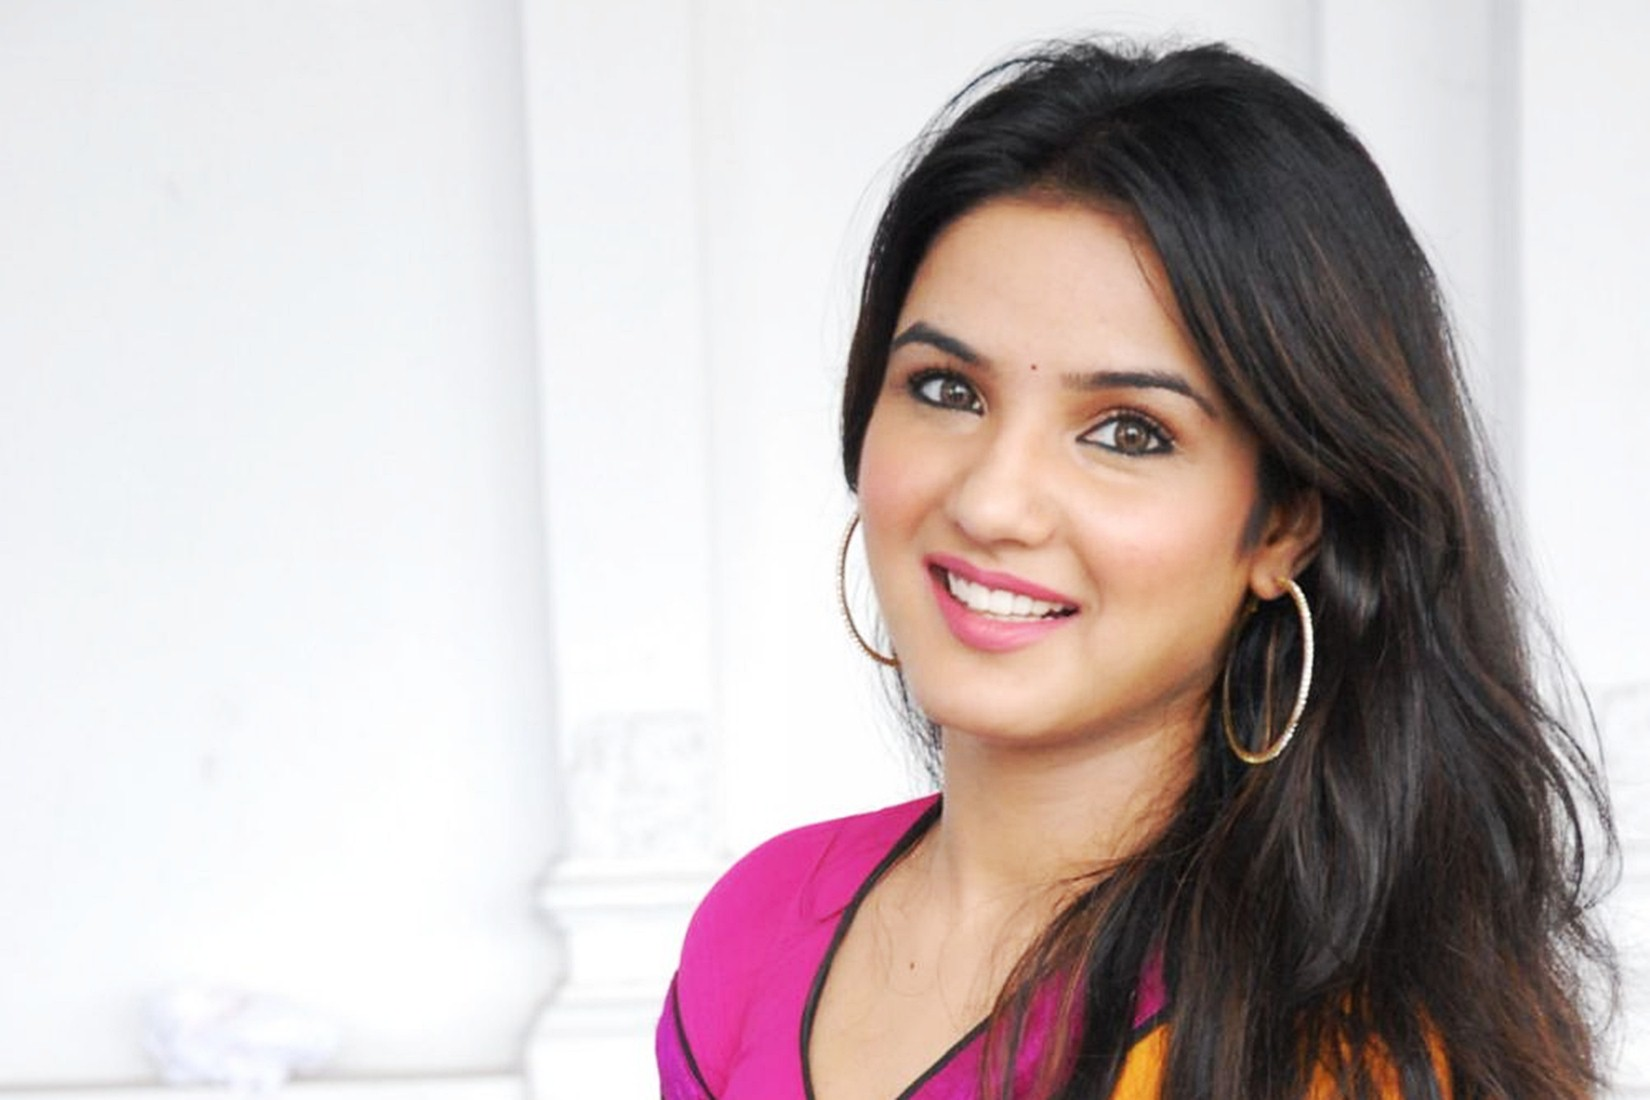 Jasmin Bhasin 2016 Wallpaper 02272